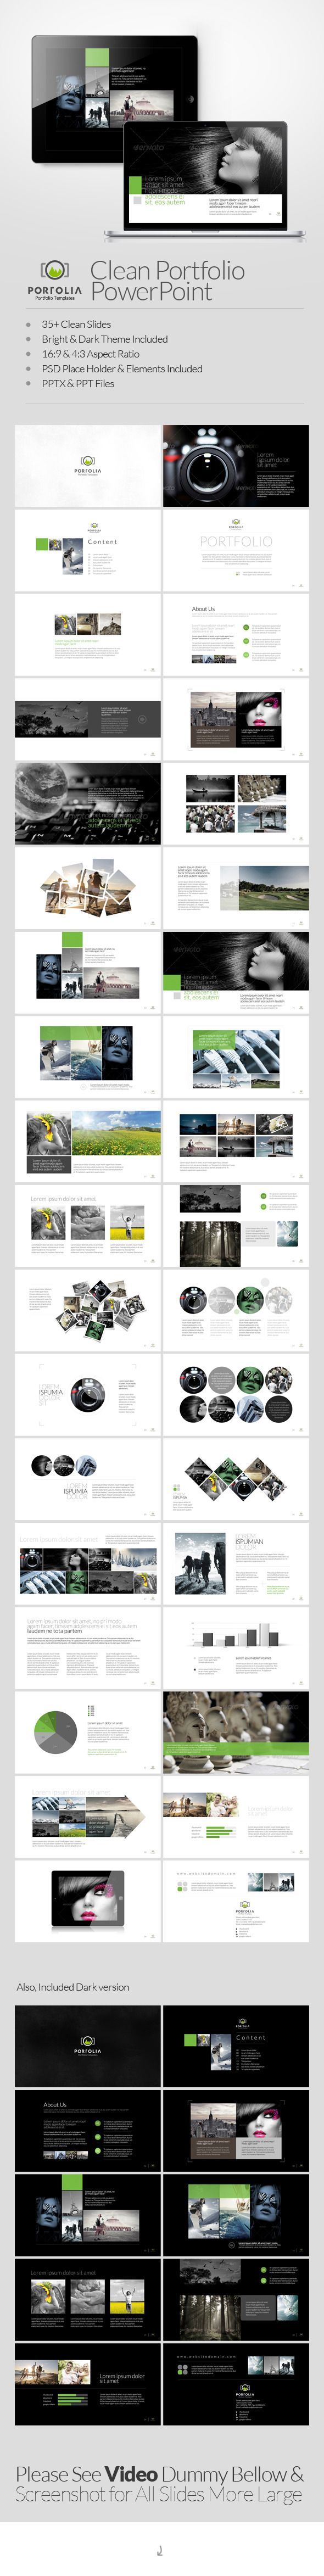 #Portolia Multipurpose Clean Portfolio Powerpoint - Business PowerPoint Templates Download here: https://graphicriver.net/item/portolia-multipurpose-clean-portfolio-powerpoint/6537310?https://graphicriver.net/item/six-template/3626243?ref=classicdesignp